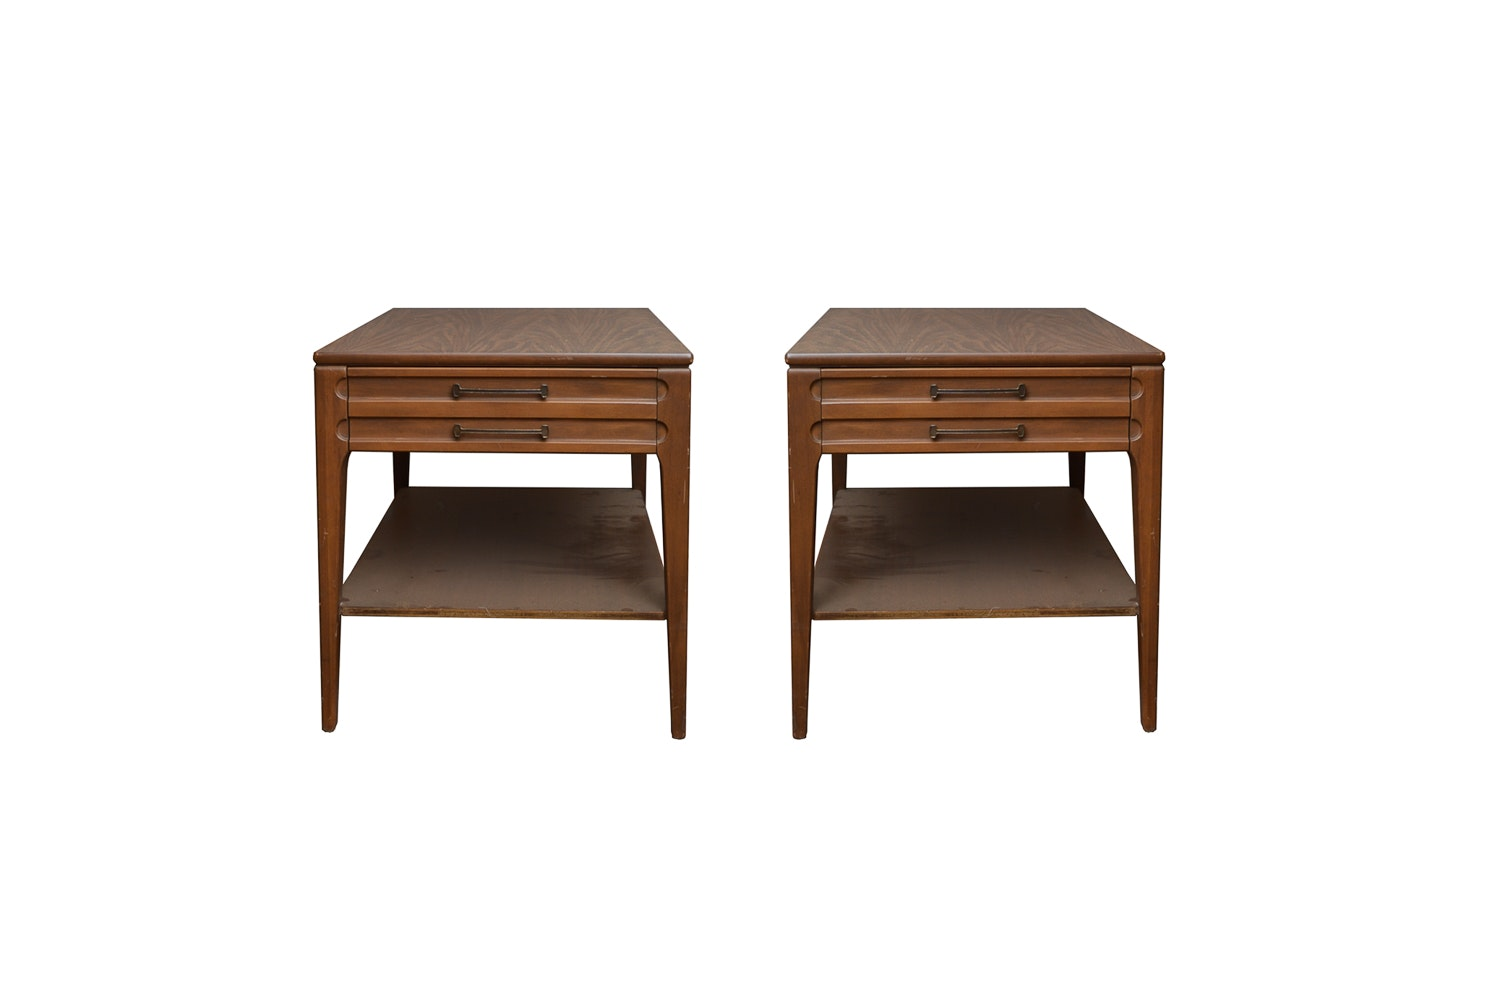 Pair of Mid Century Modern Side Tables by Mersman